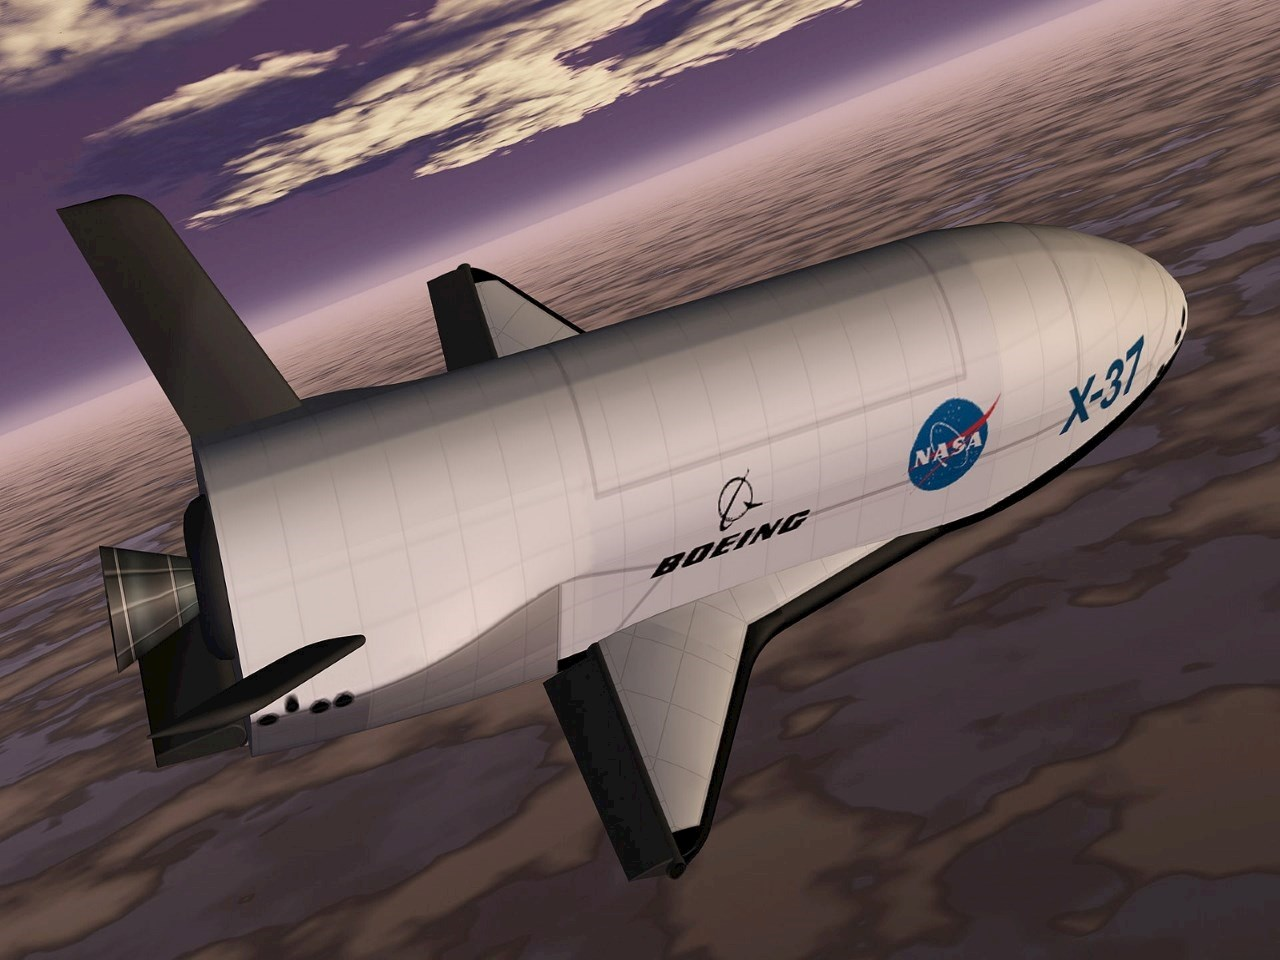 1999 artist's rendering of the X-37 spacecraft